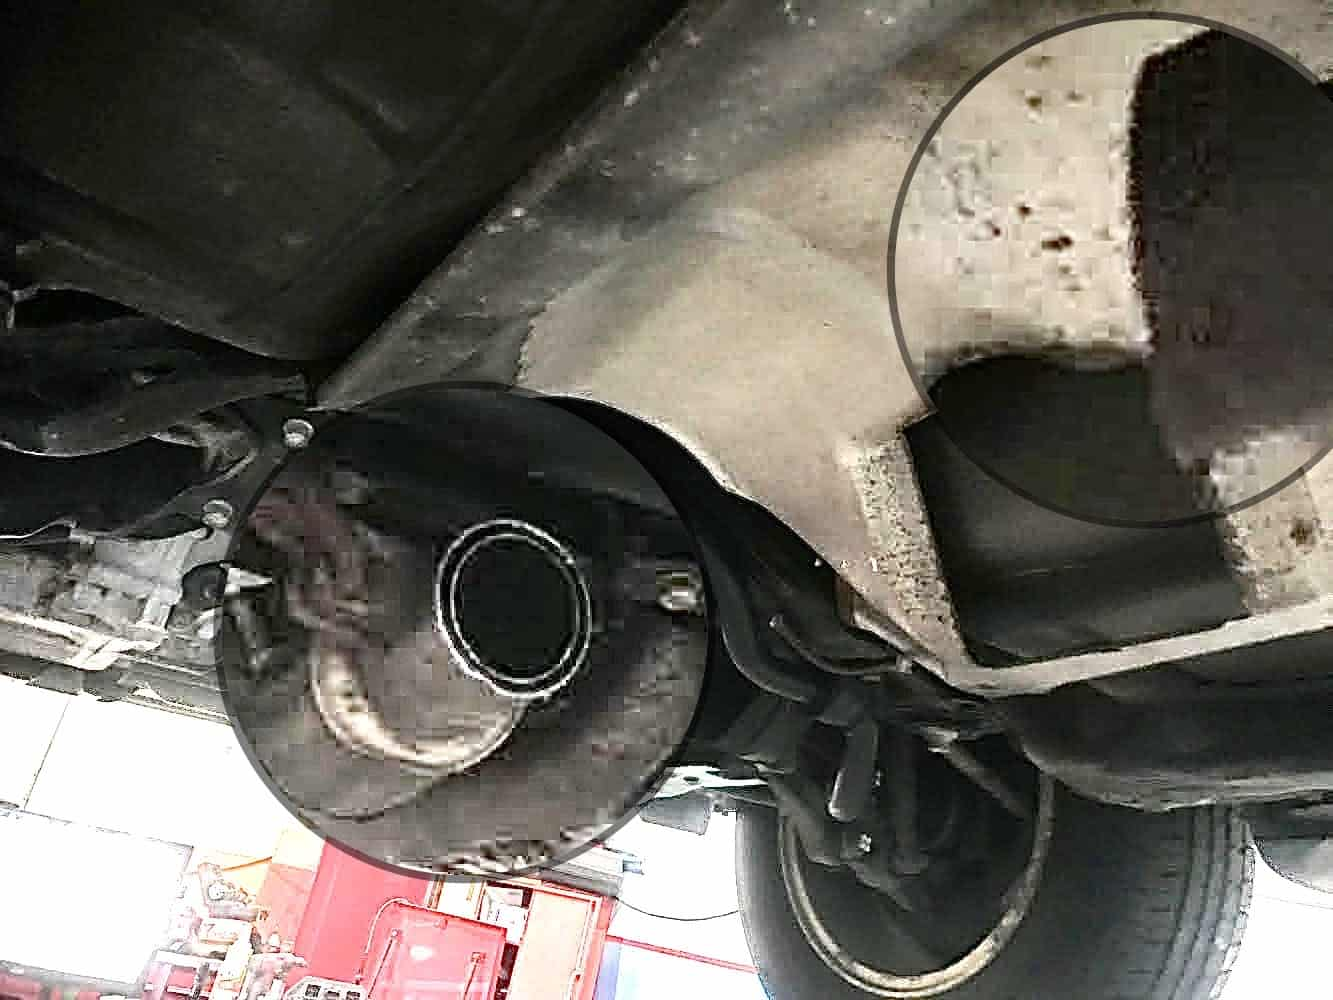 Catalytic Converters Stolen at Horner Road Commuter Lot